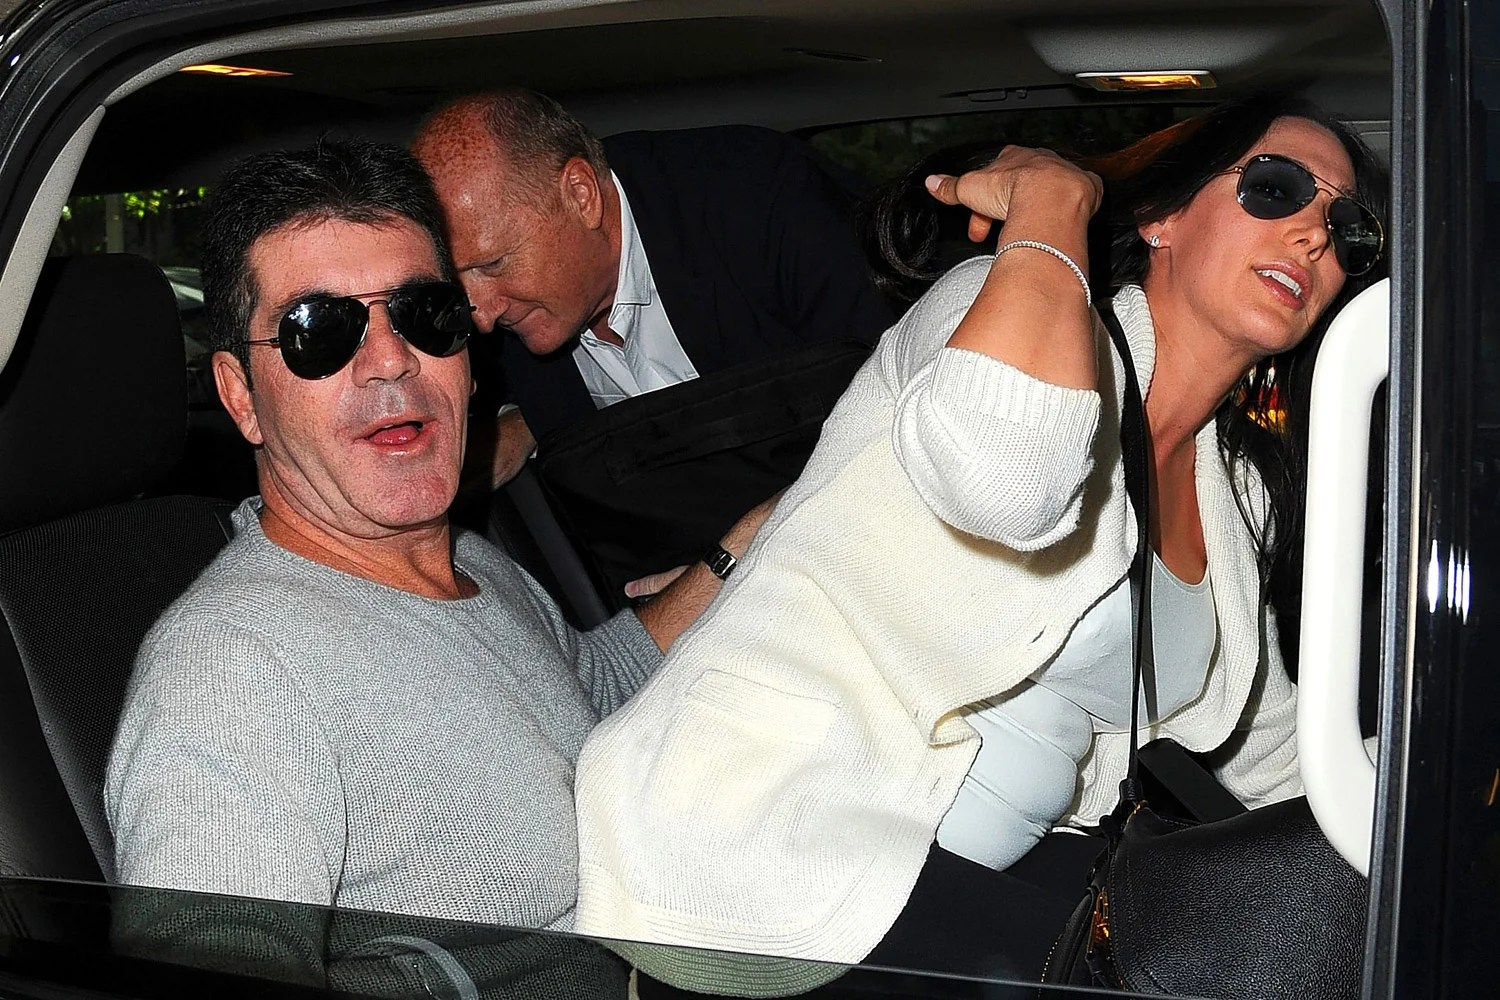 Simon Cowell hints at marriage and son  London Evening